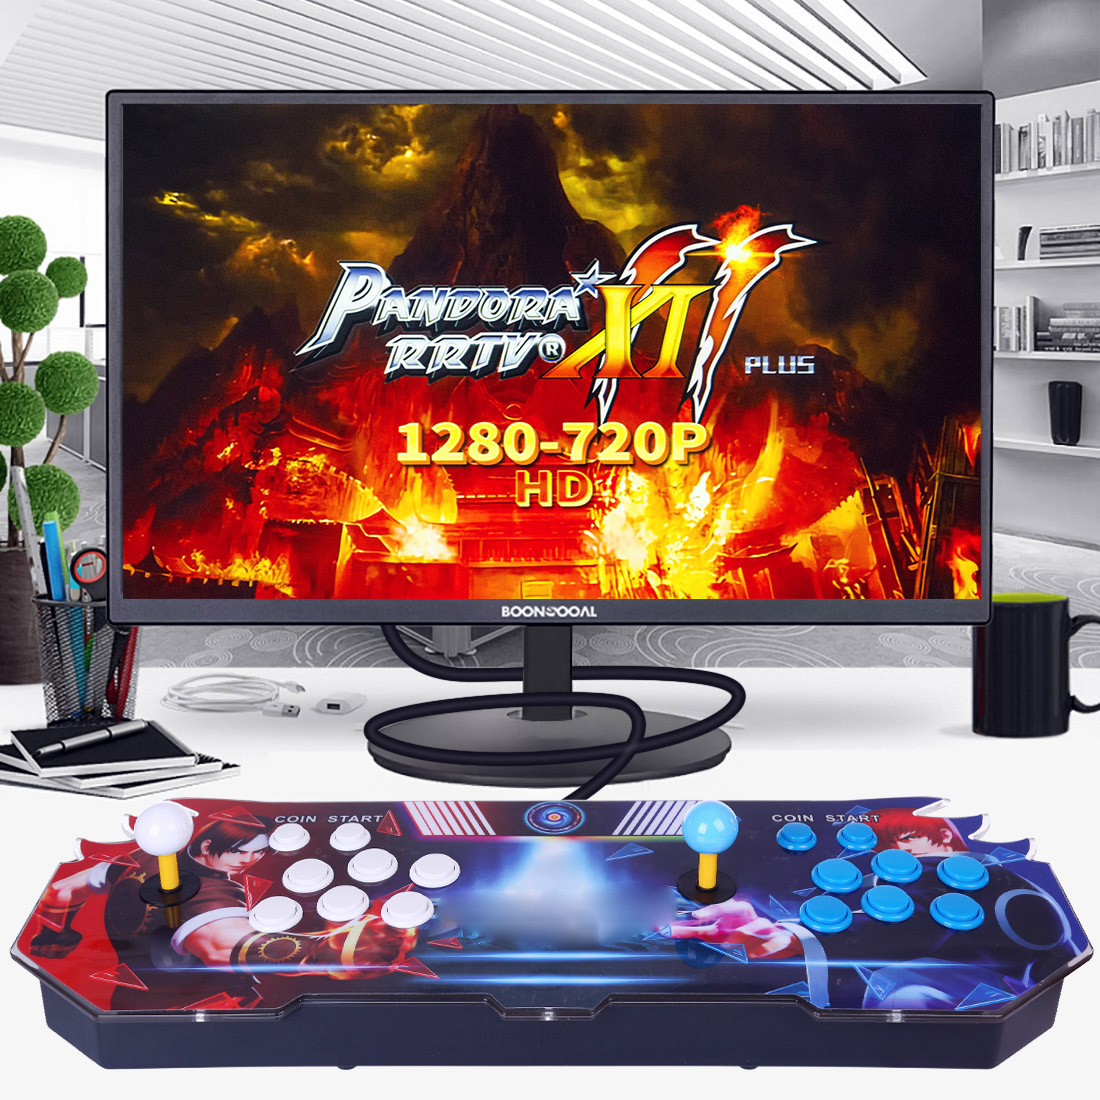 Pandora Box 11S 3003 Games Multi-player Arcade Game Console (Artwork: QANBA)  (ABS Plastic Body)